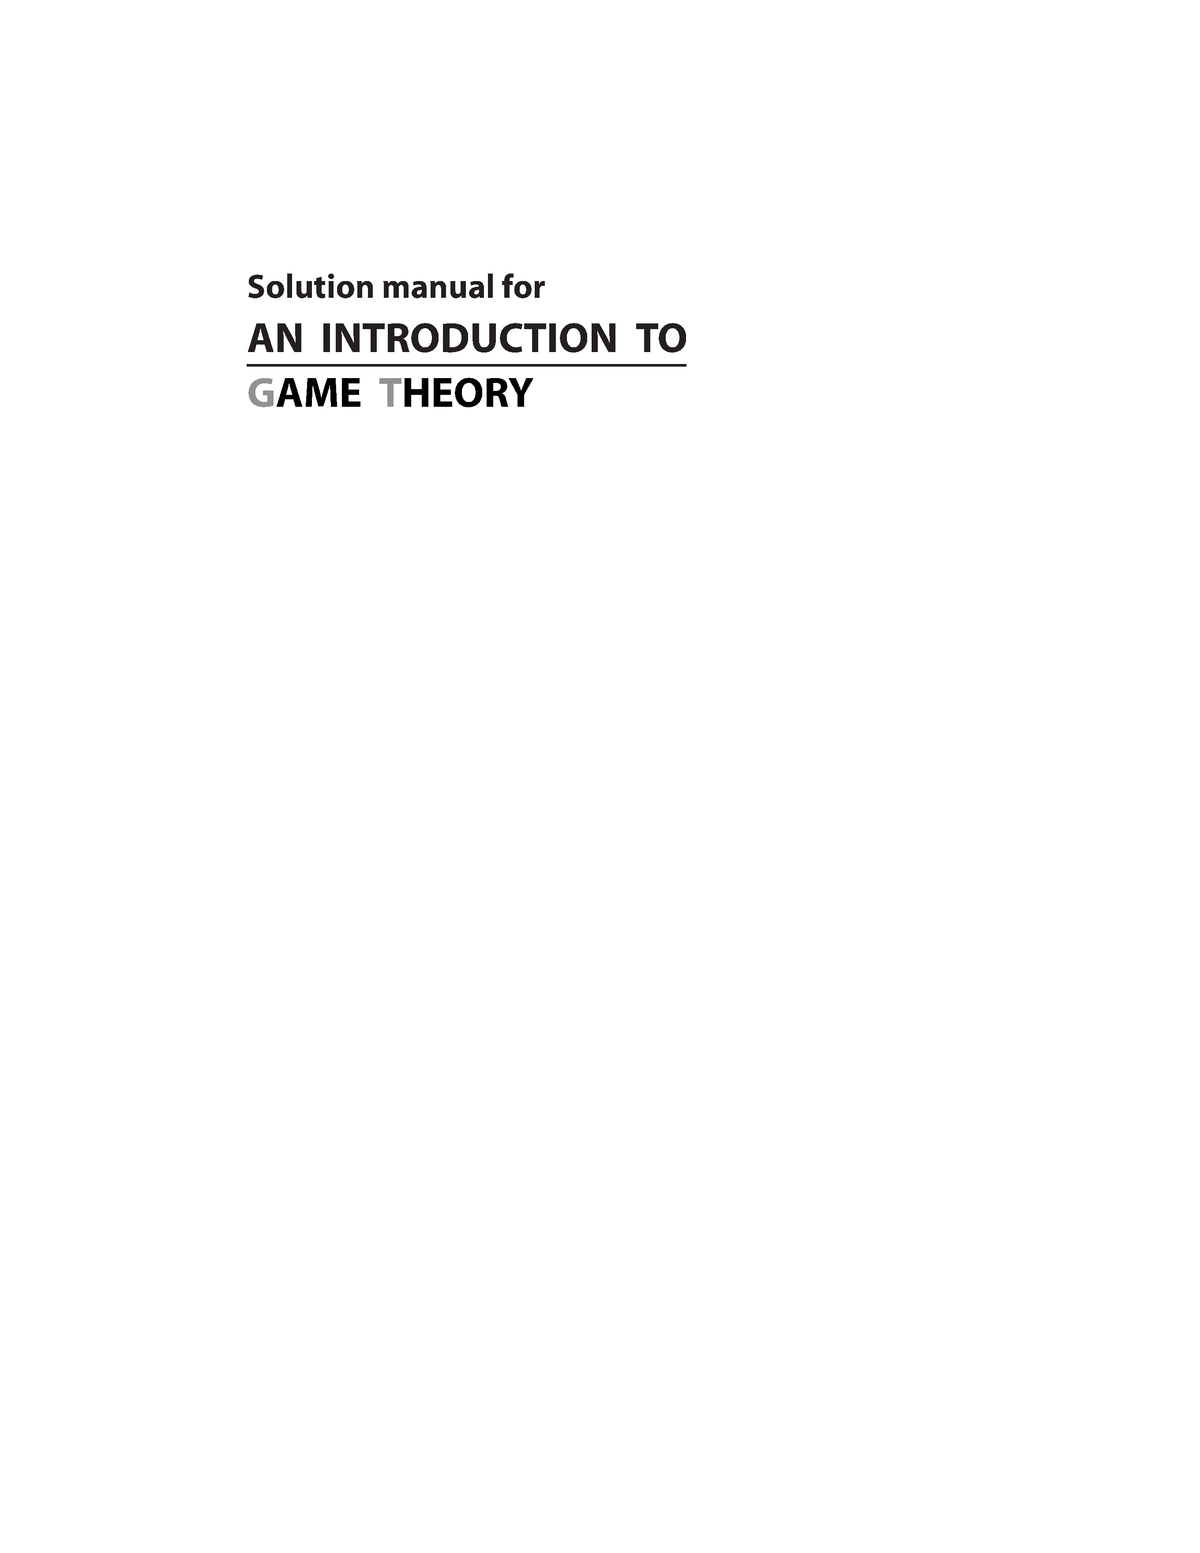 Osborne An Introduction To Game Theory Solutions